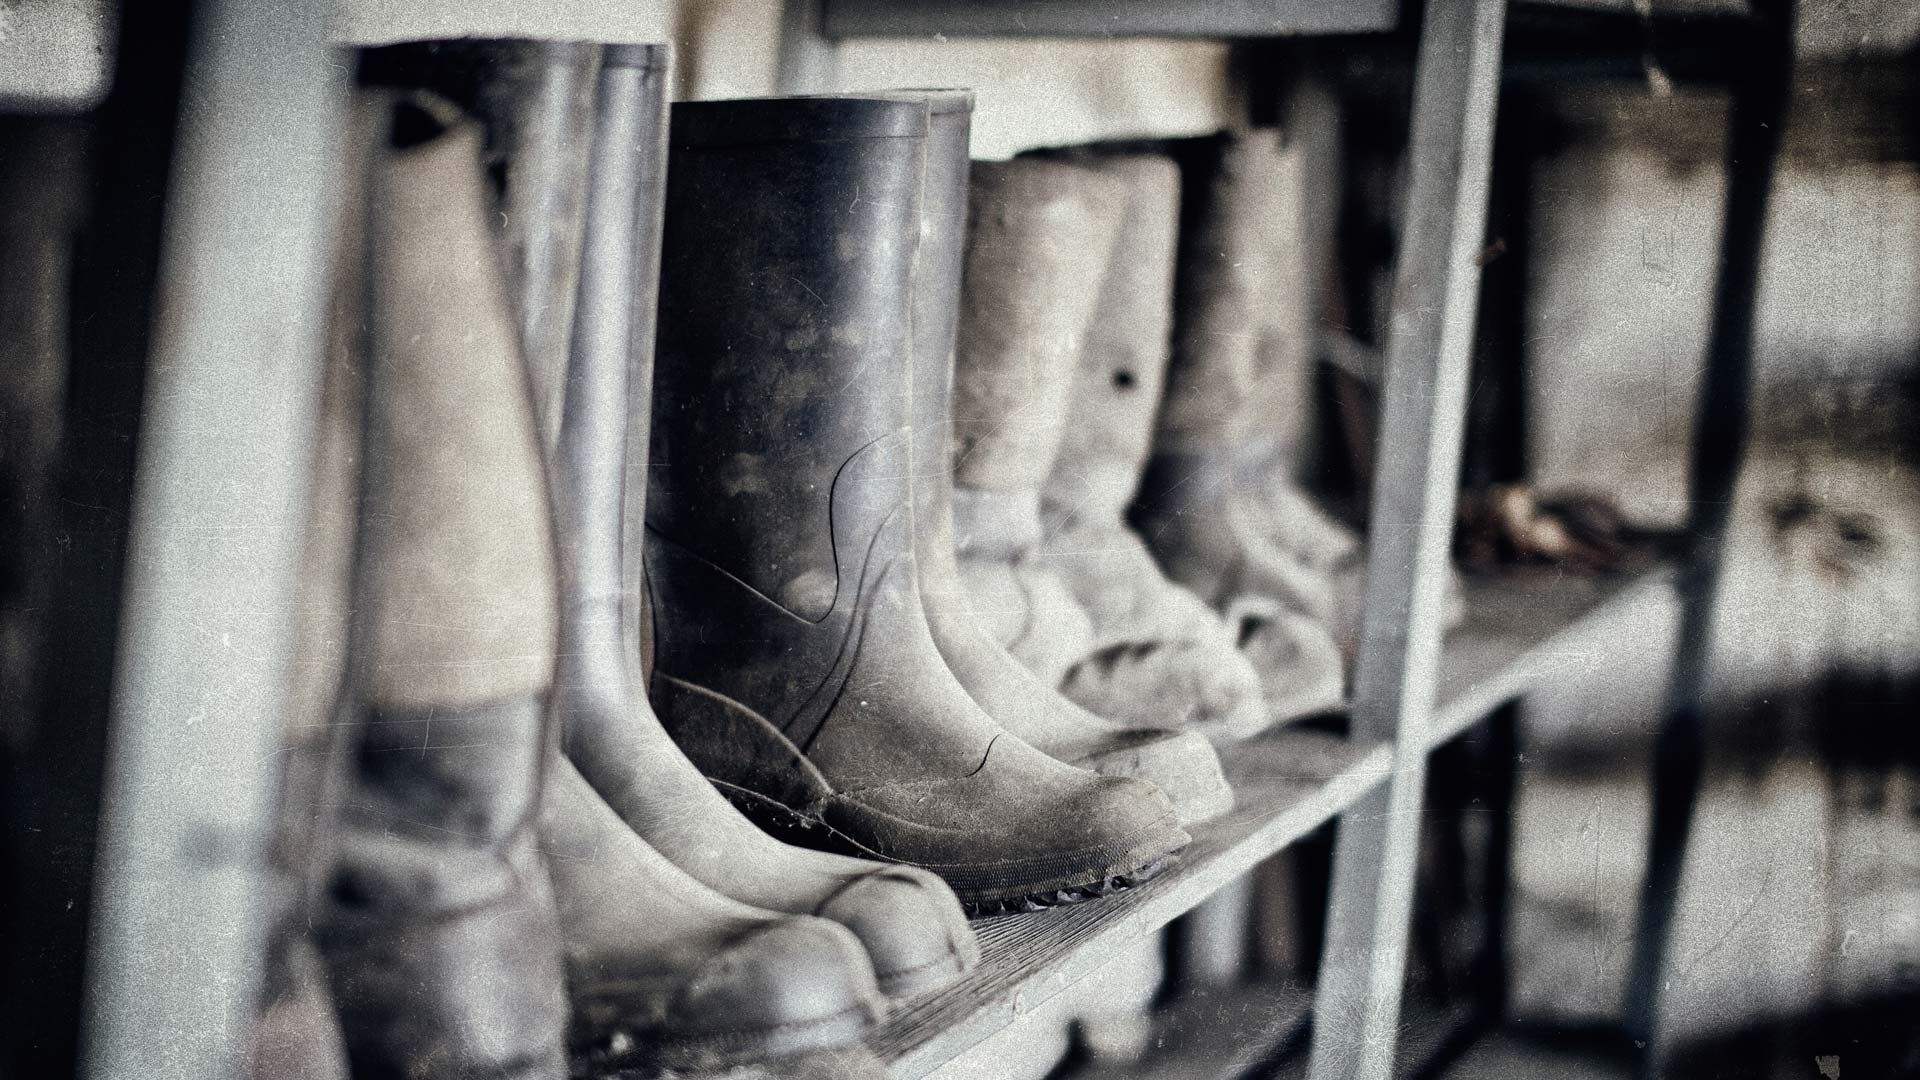 Boots on the shelf